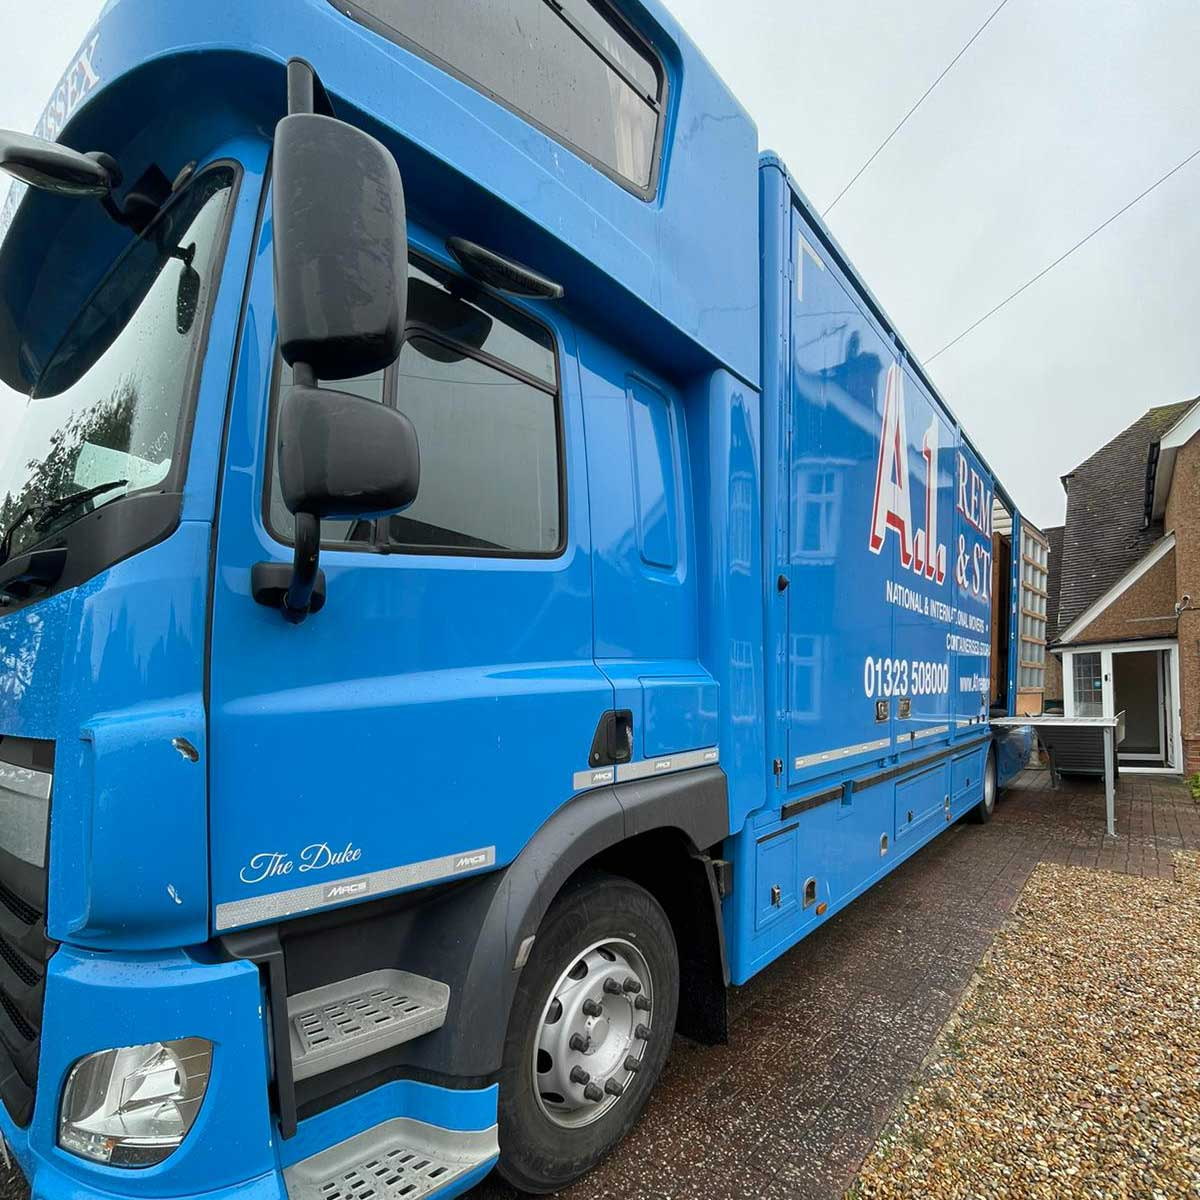 A1 Removals & Storage Truck parked ready to load